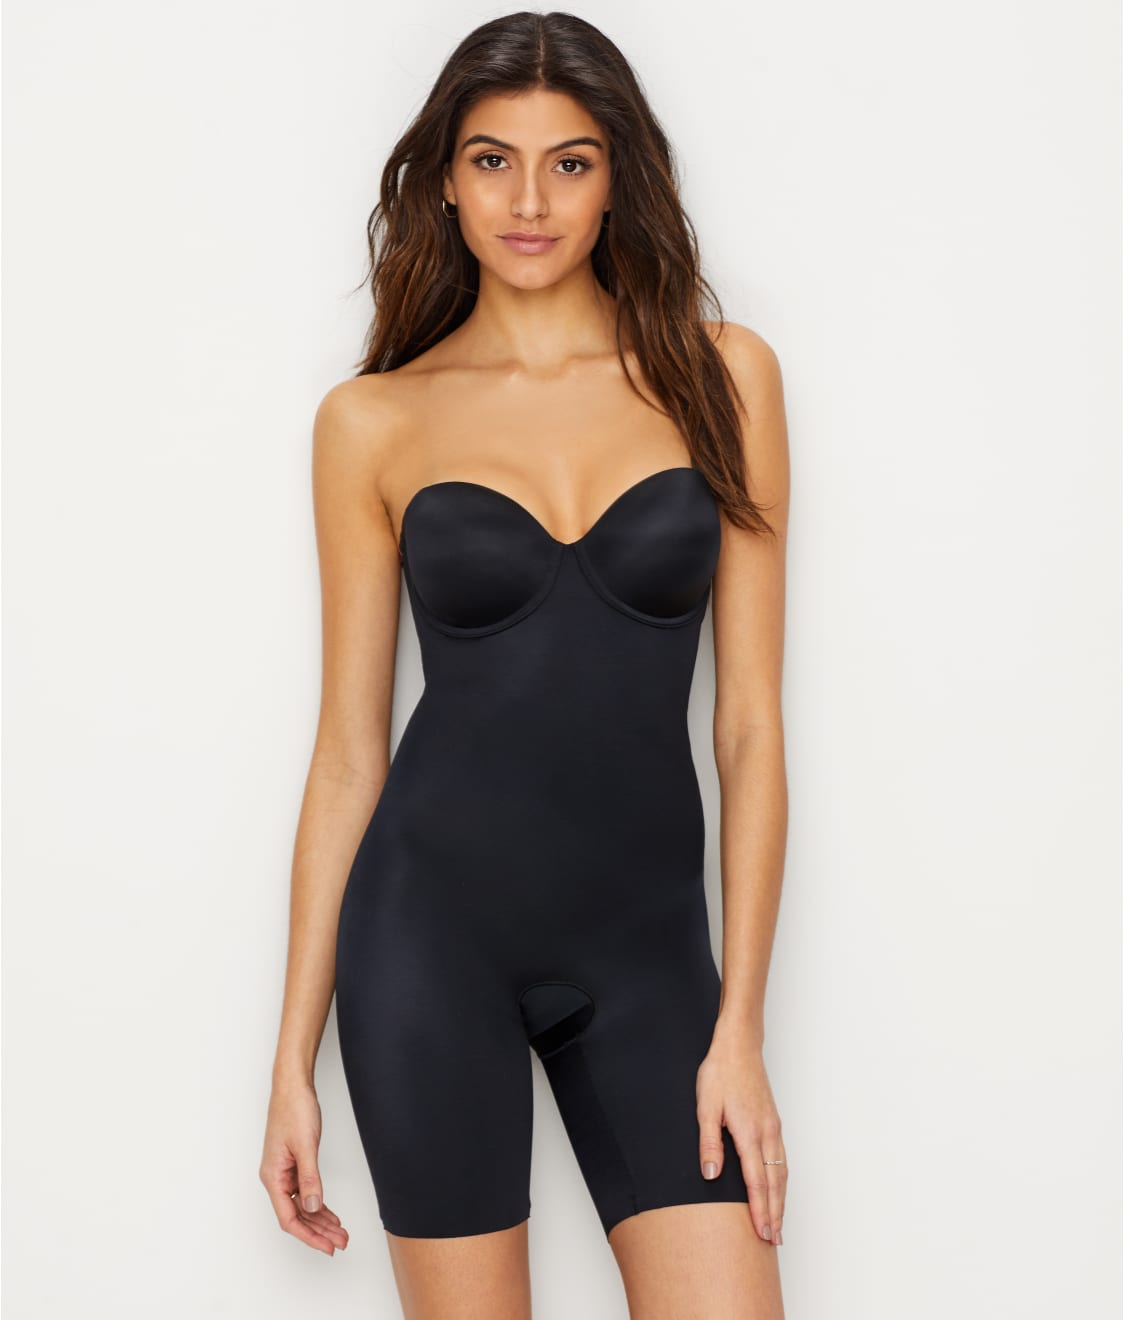 98f40977e0 See Suit Your Fancy Medium Control Strapless Bodysuit in Very Black